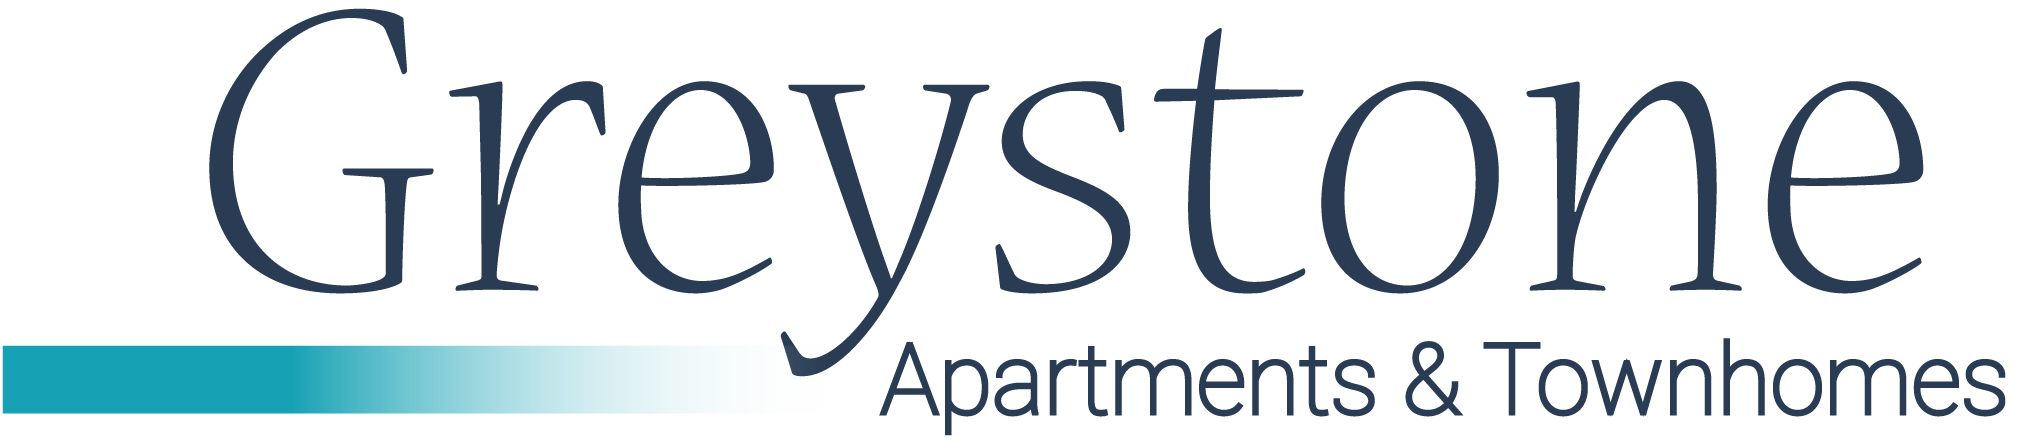 Greystone Apartments & Townhomes